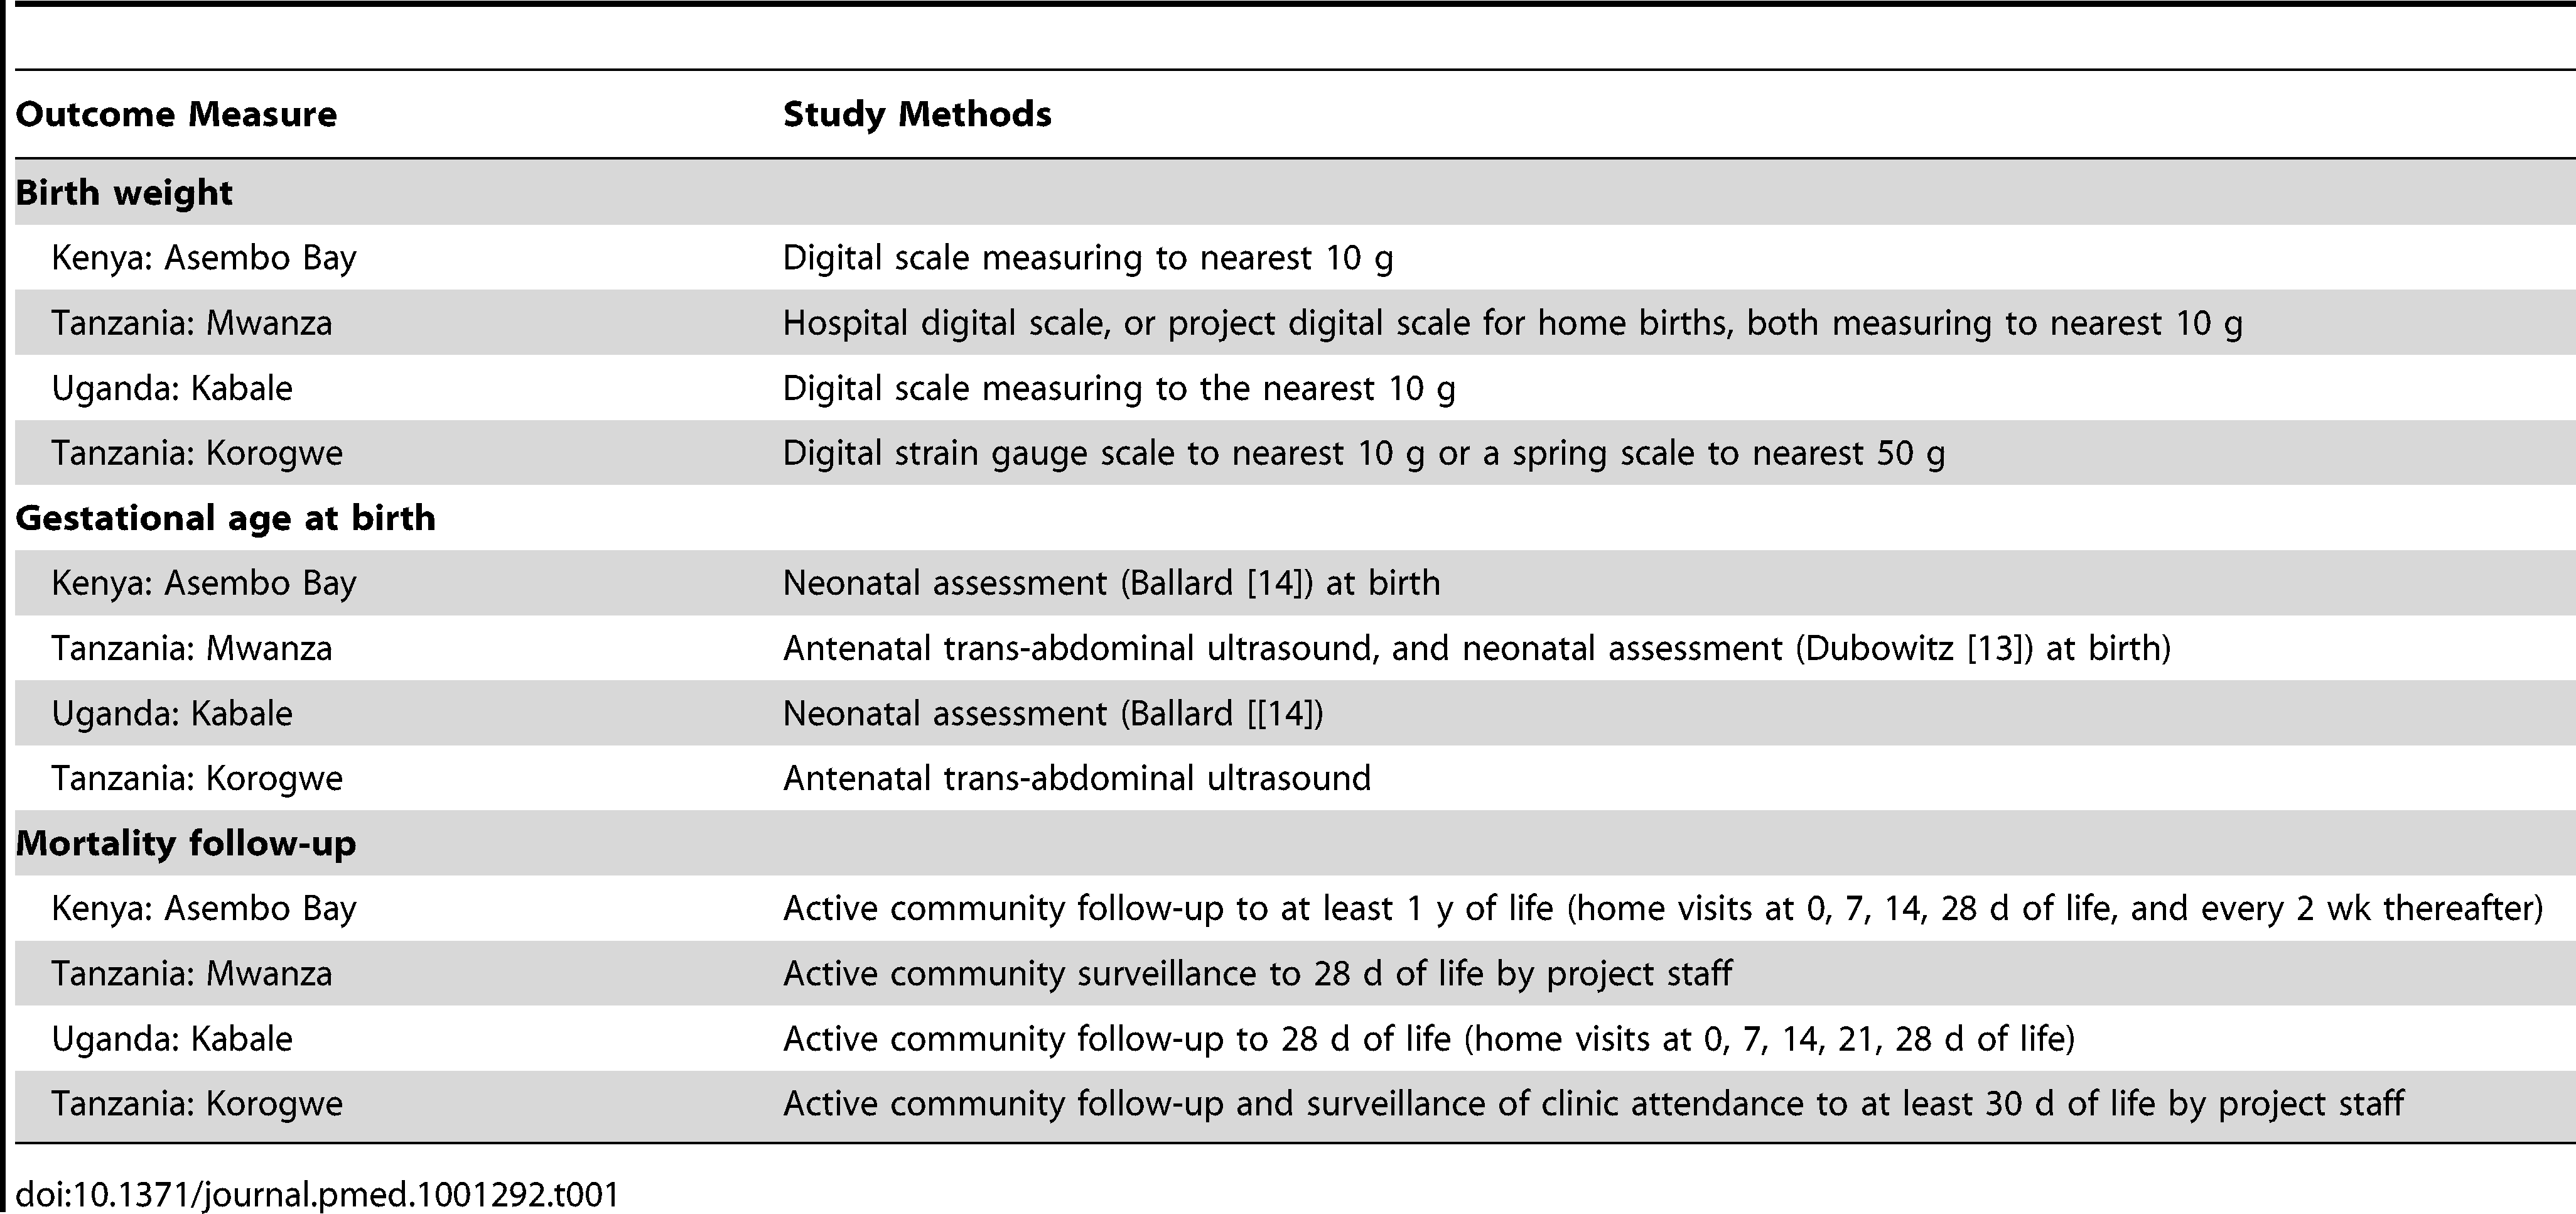 Study methods for measurement of newborn outcomes (birth weight, gestational age at birth. and mortality follow-up).